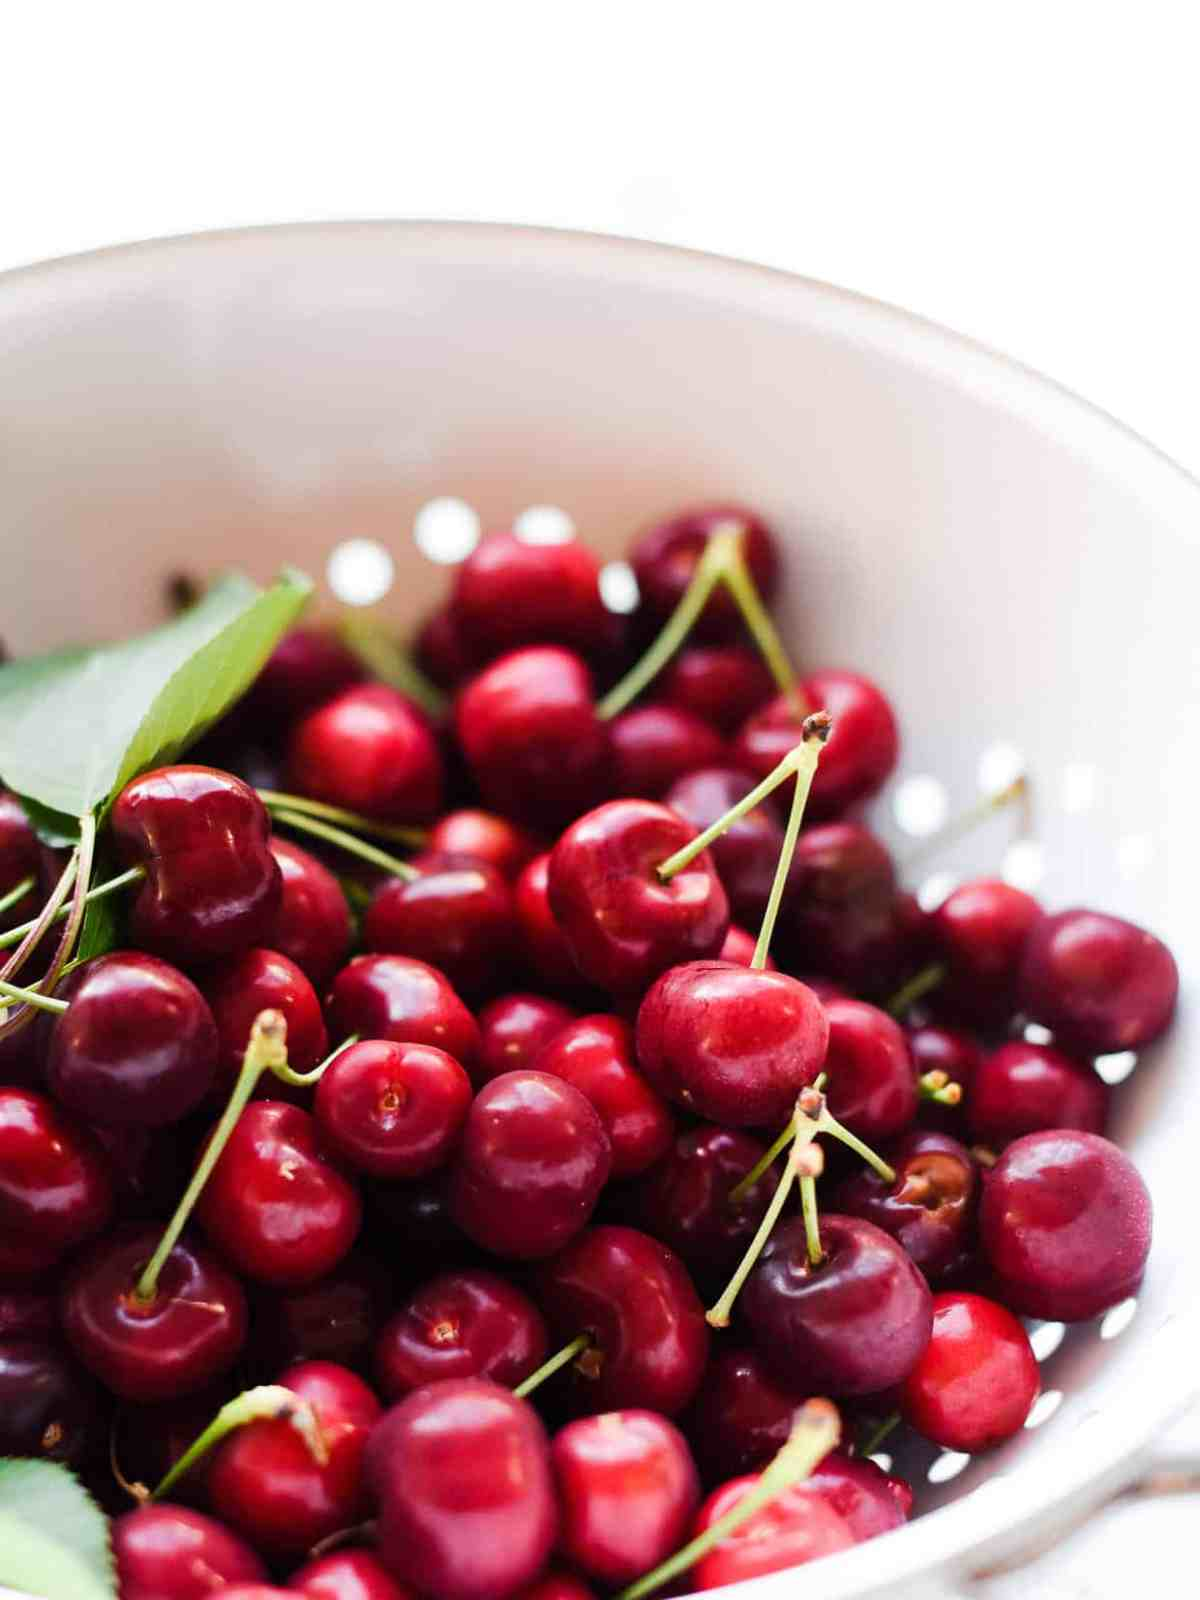 Fresh cherries with stems in a white colander.